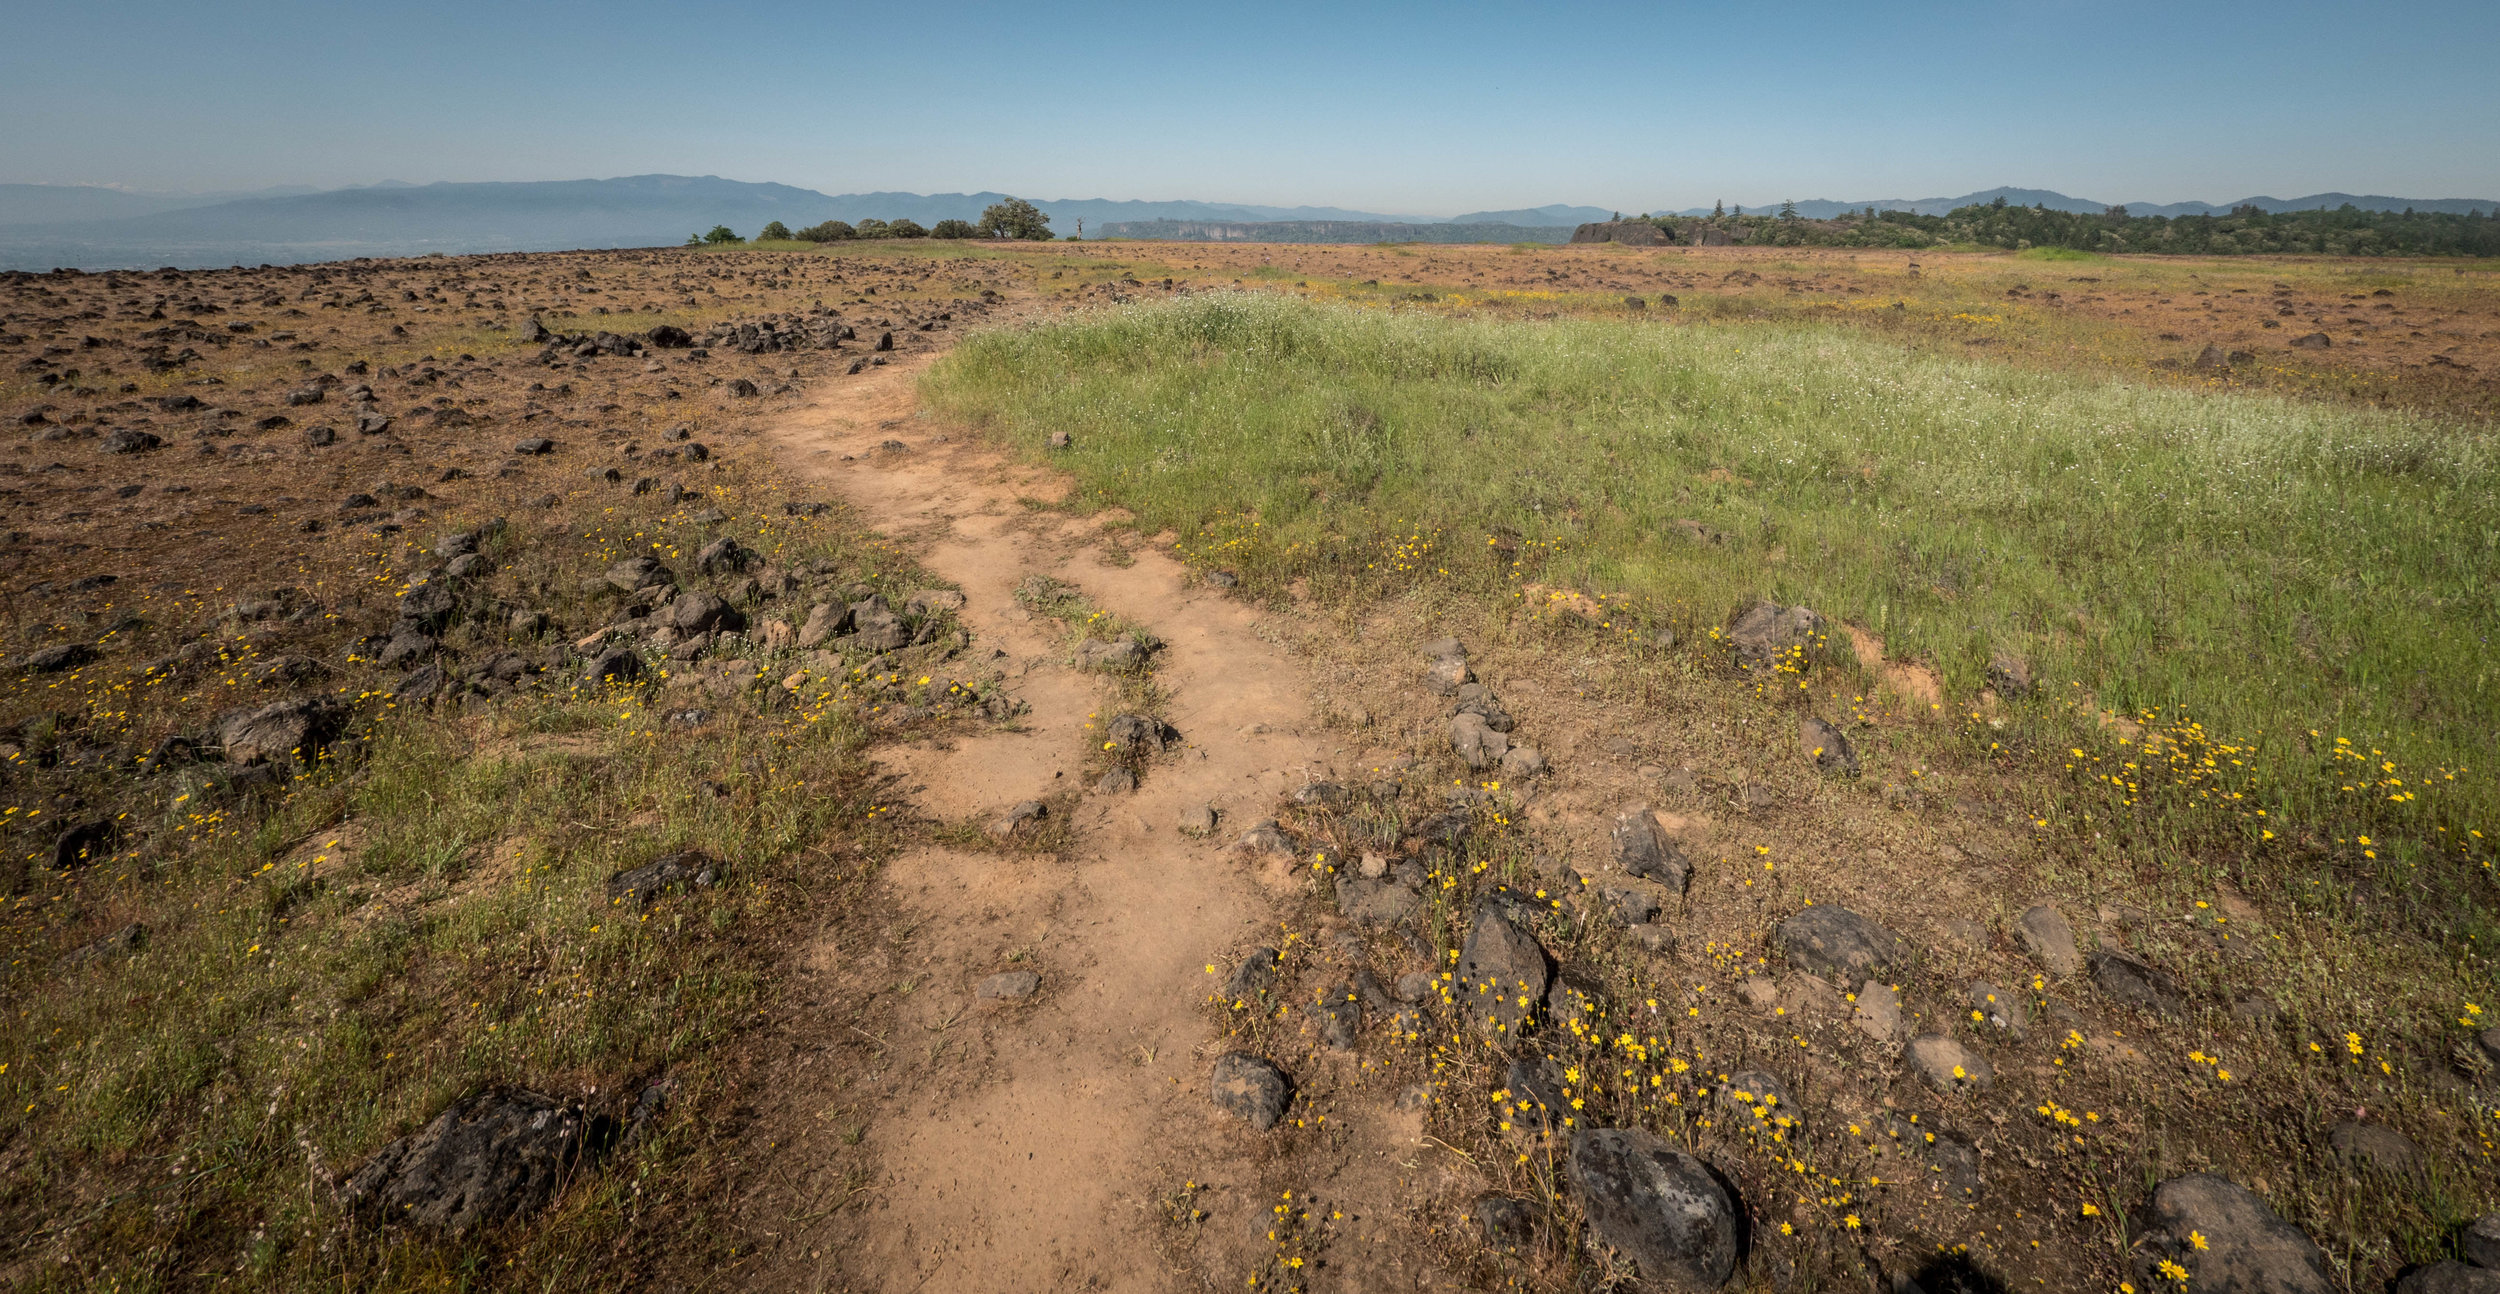 The trail going off into the distance. The top of the mesa is flat and spotted with wildflowers and grasses.